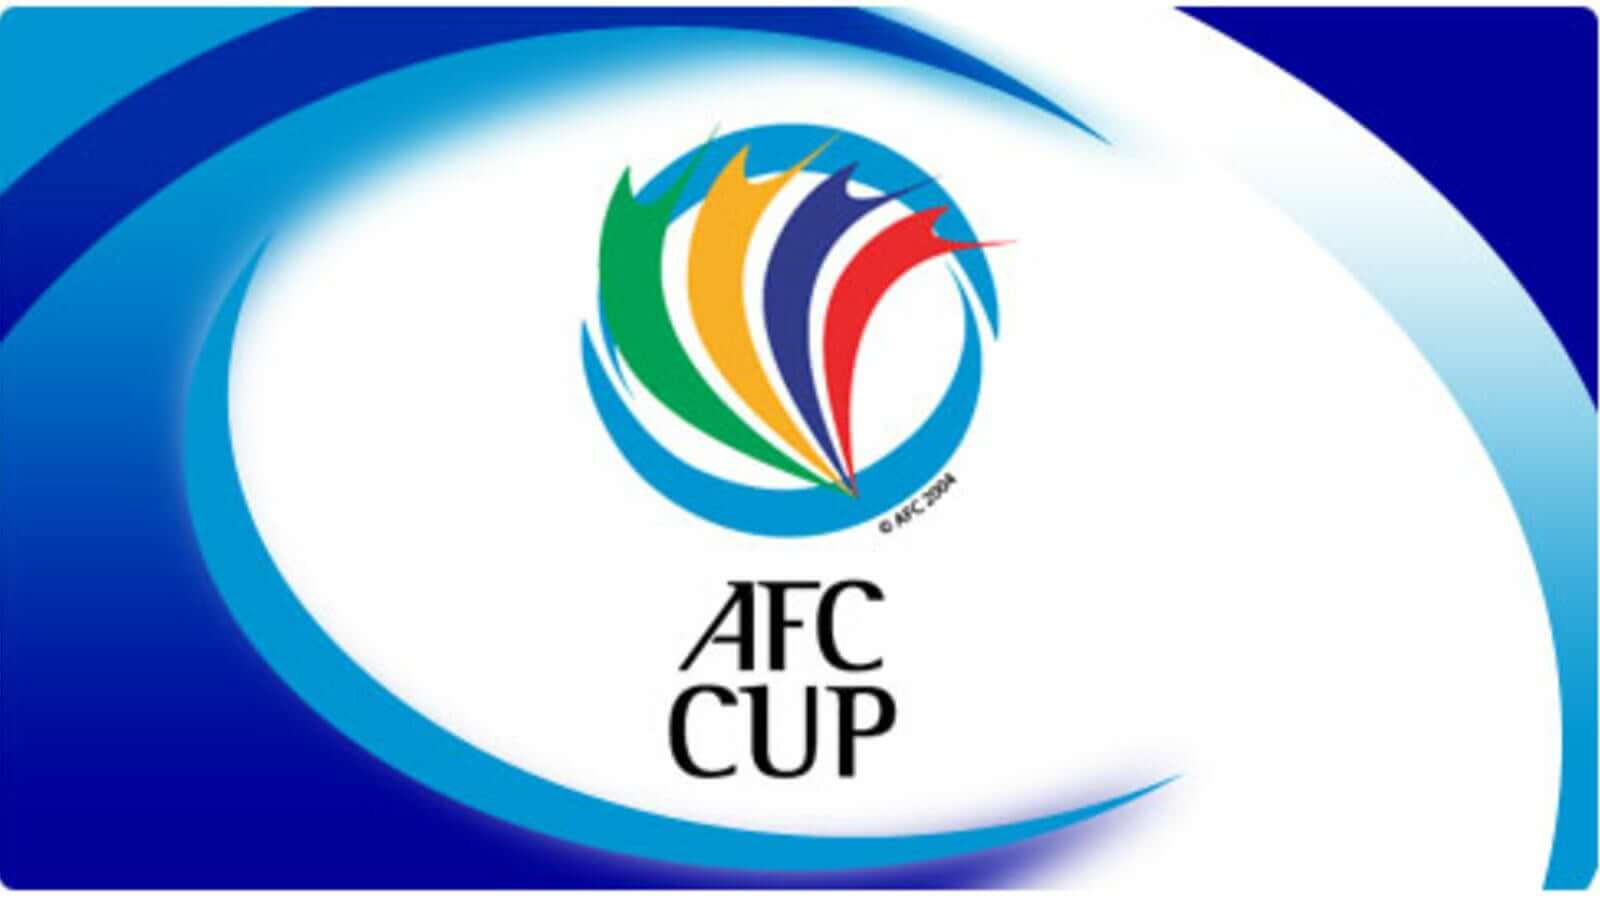 asianfootballconfederationdecidestocancelafccupamidcovid19pandemic